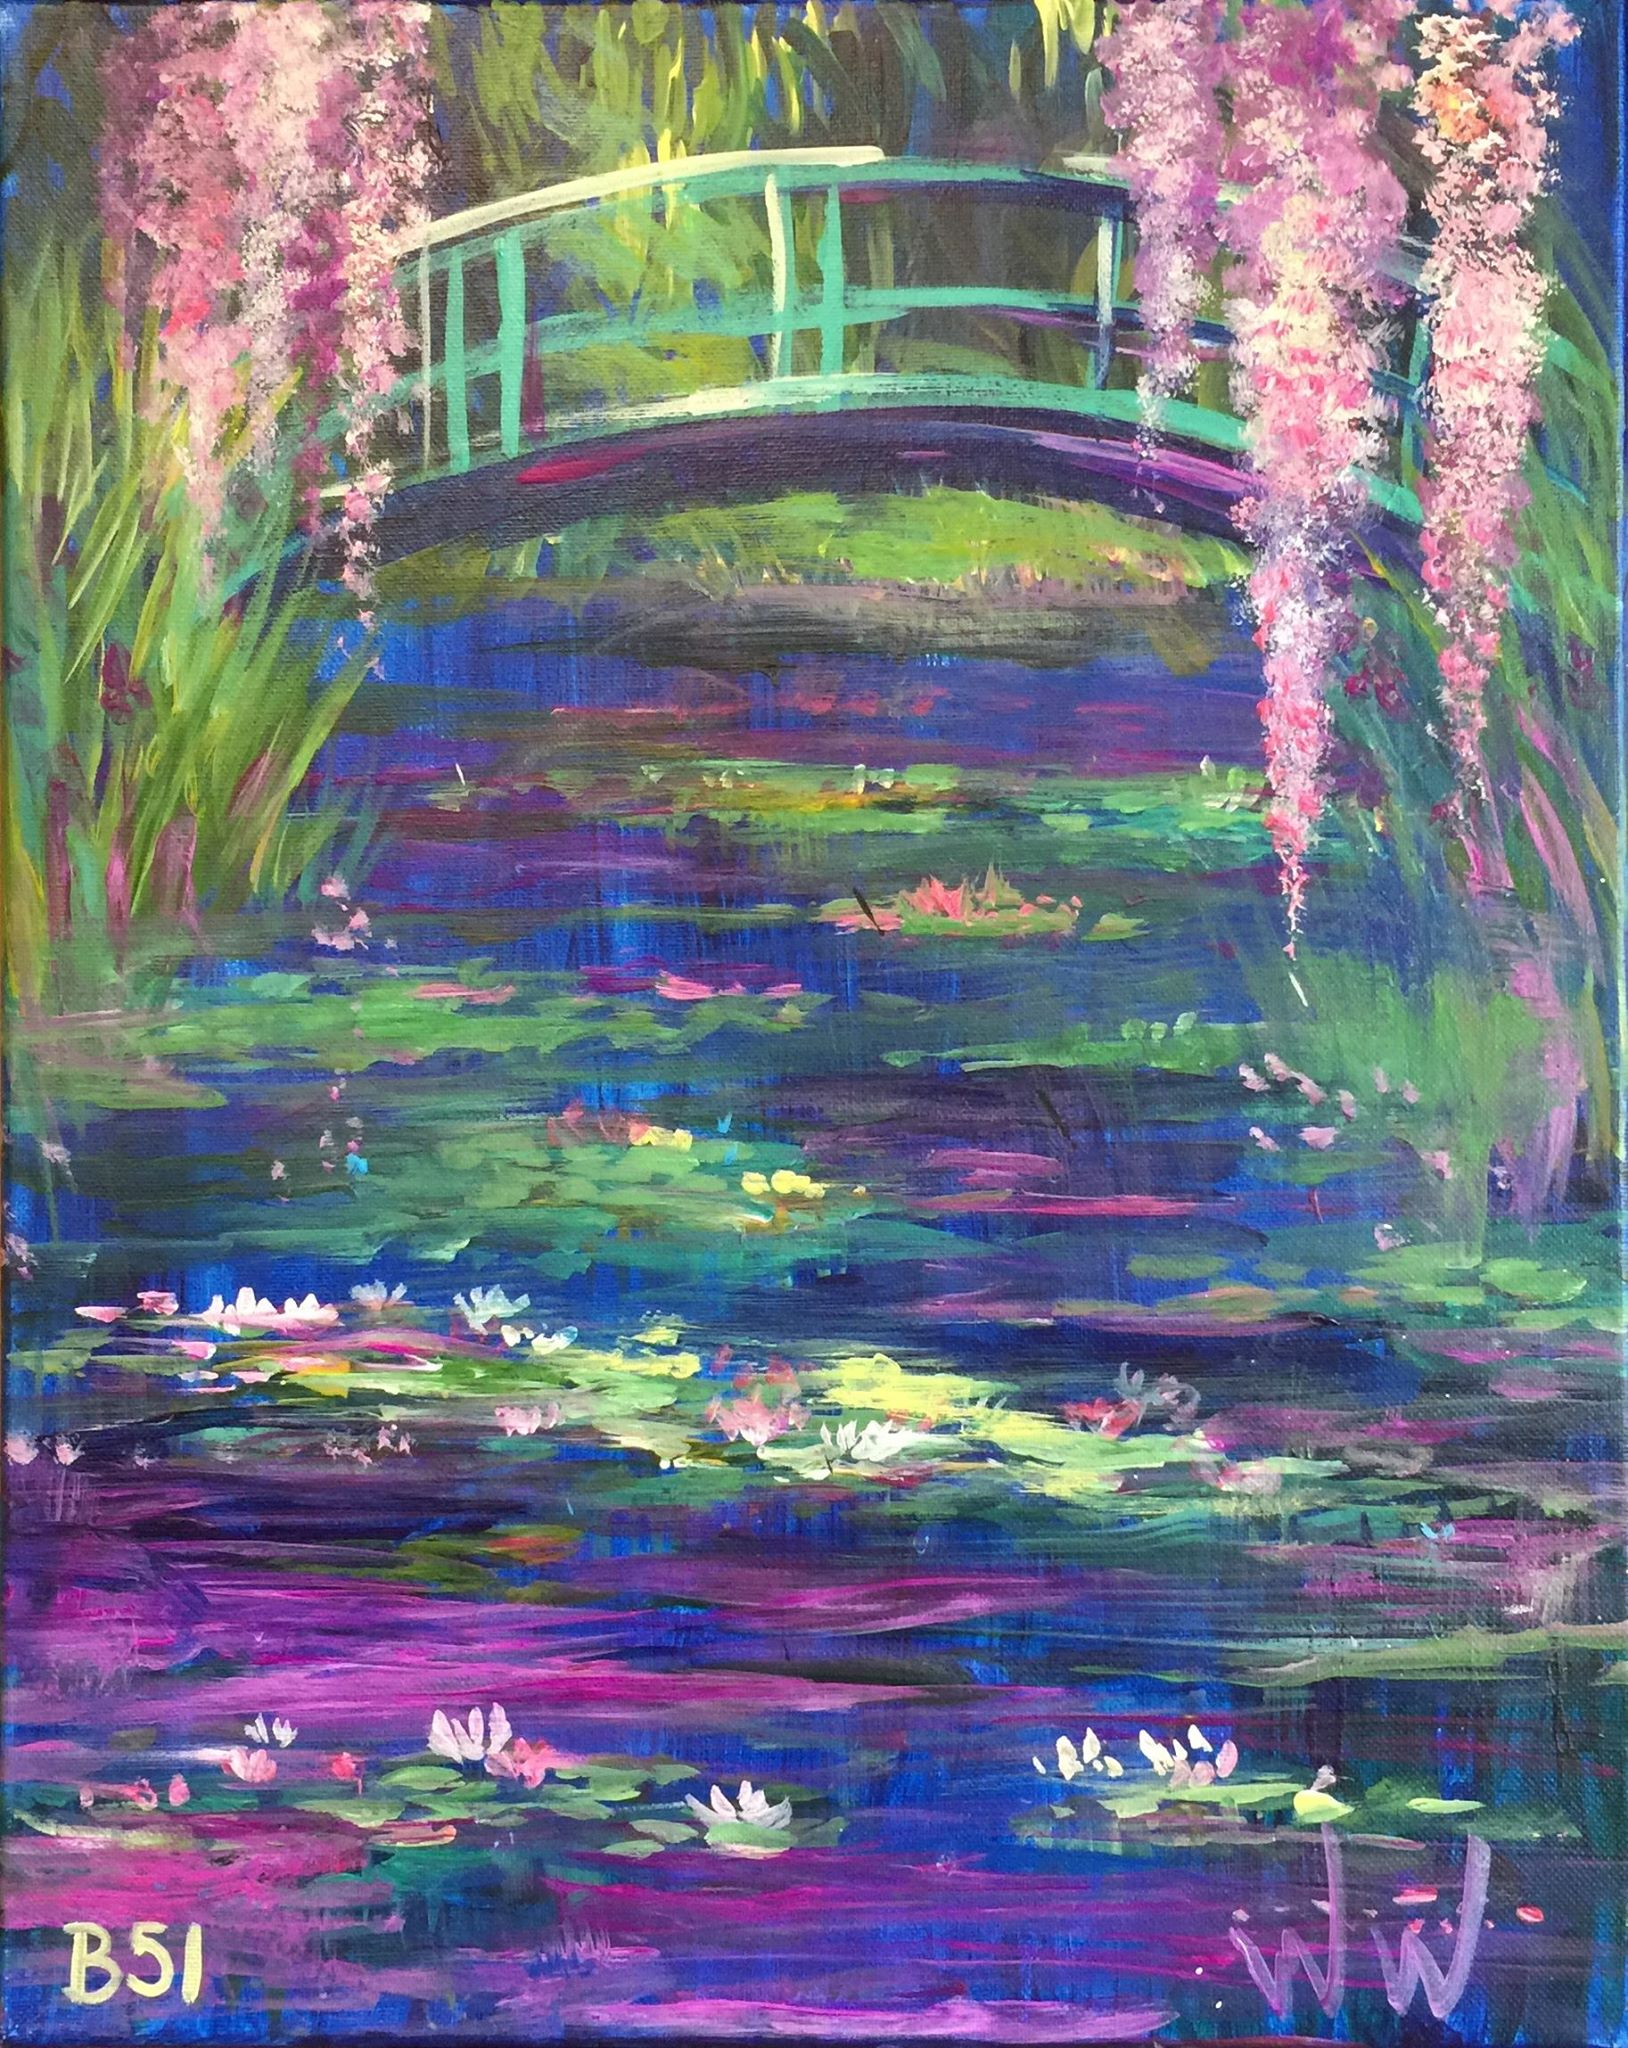 B-58 Monet Bridge